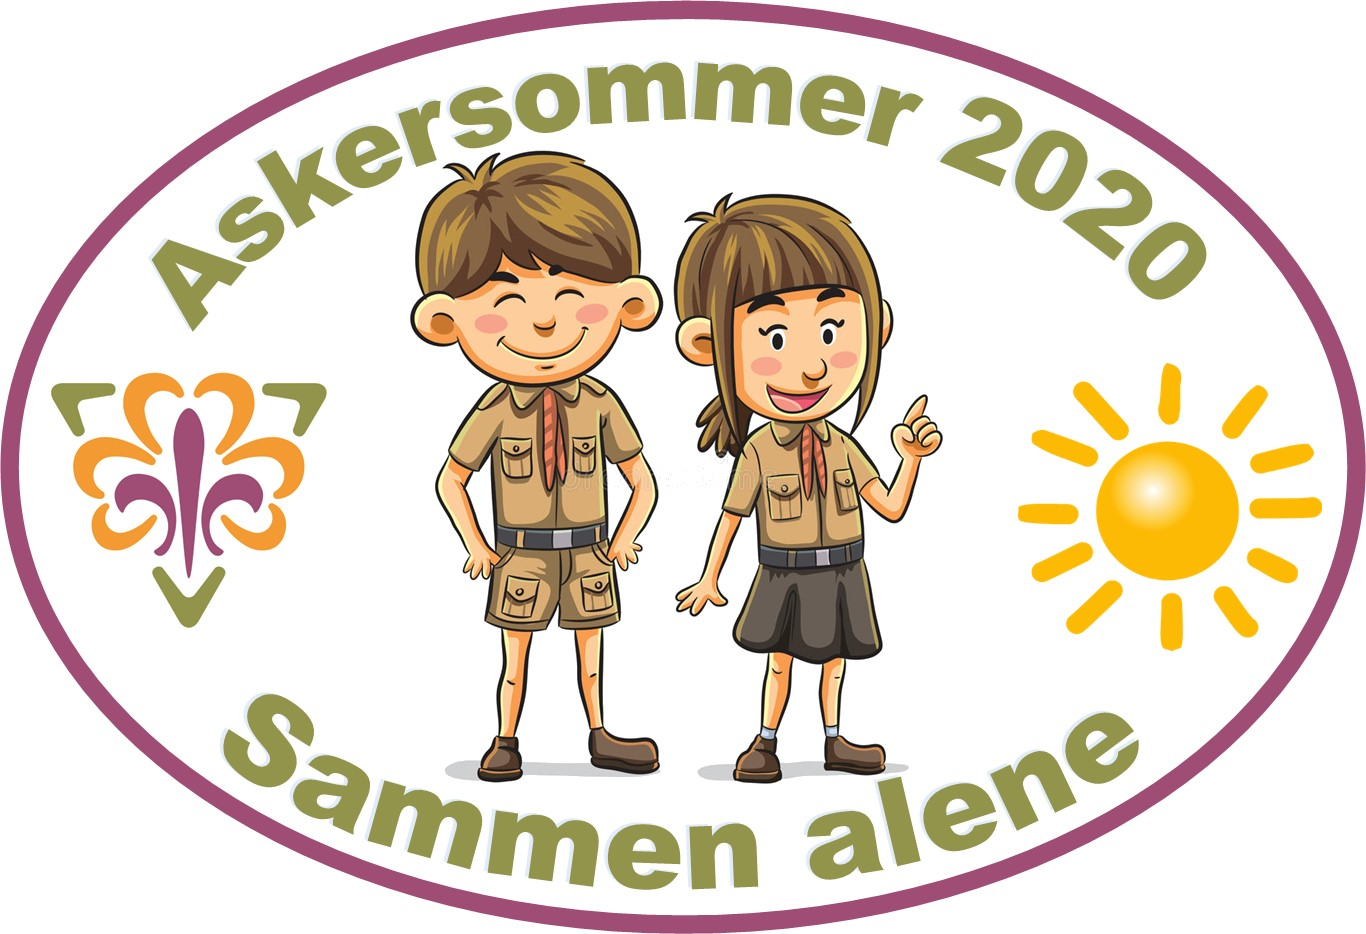 Askersommer 2020